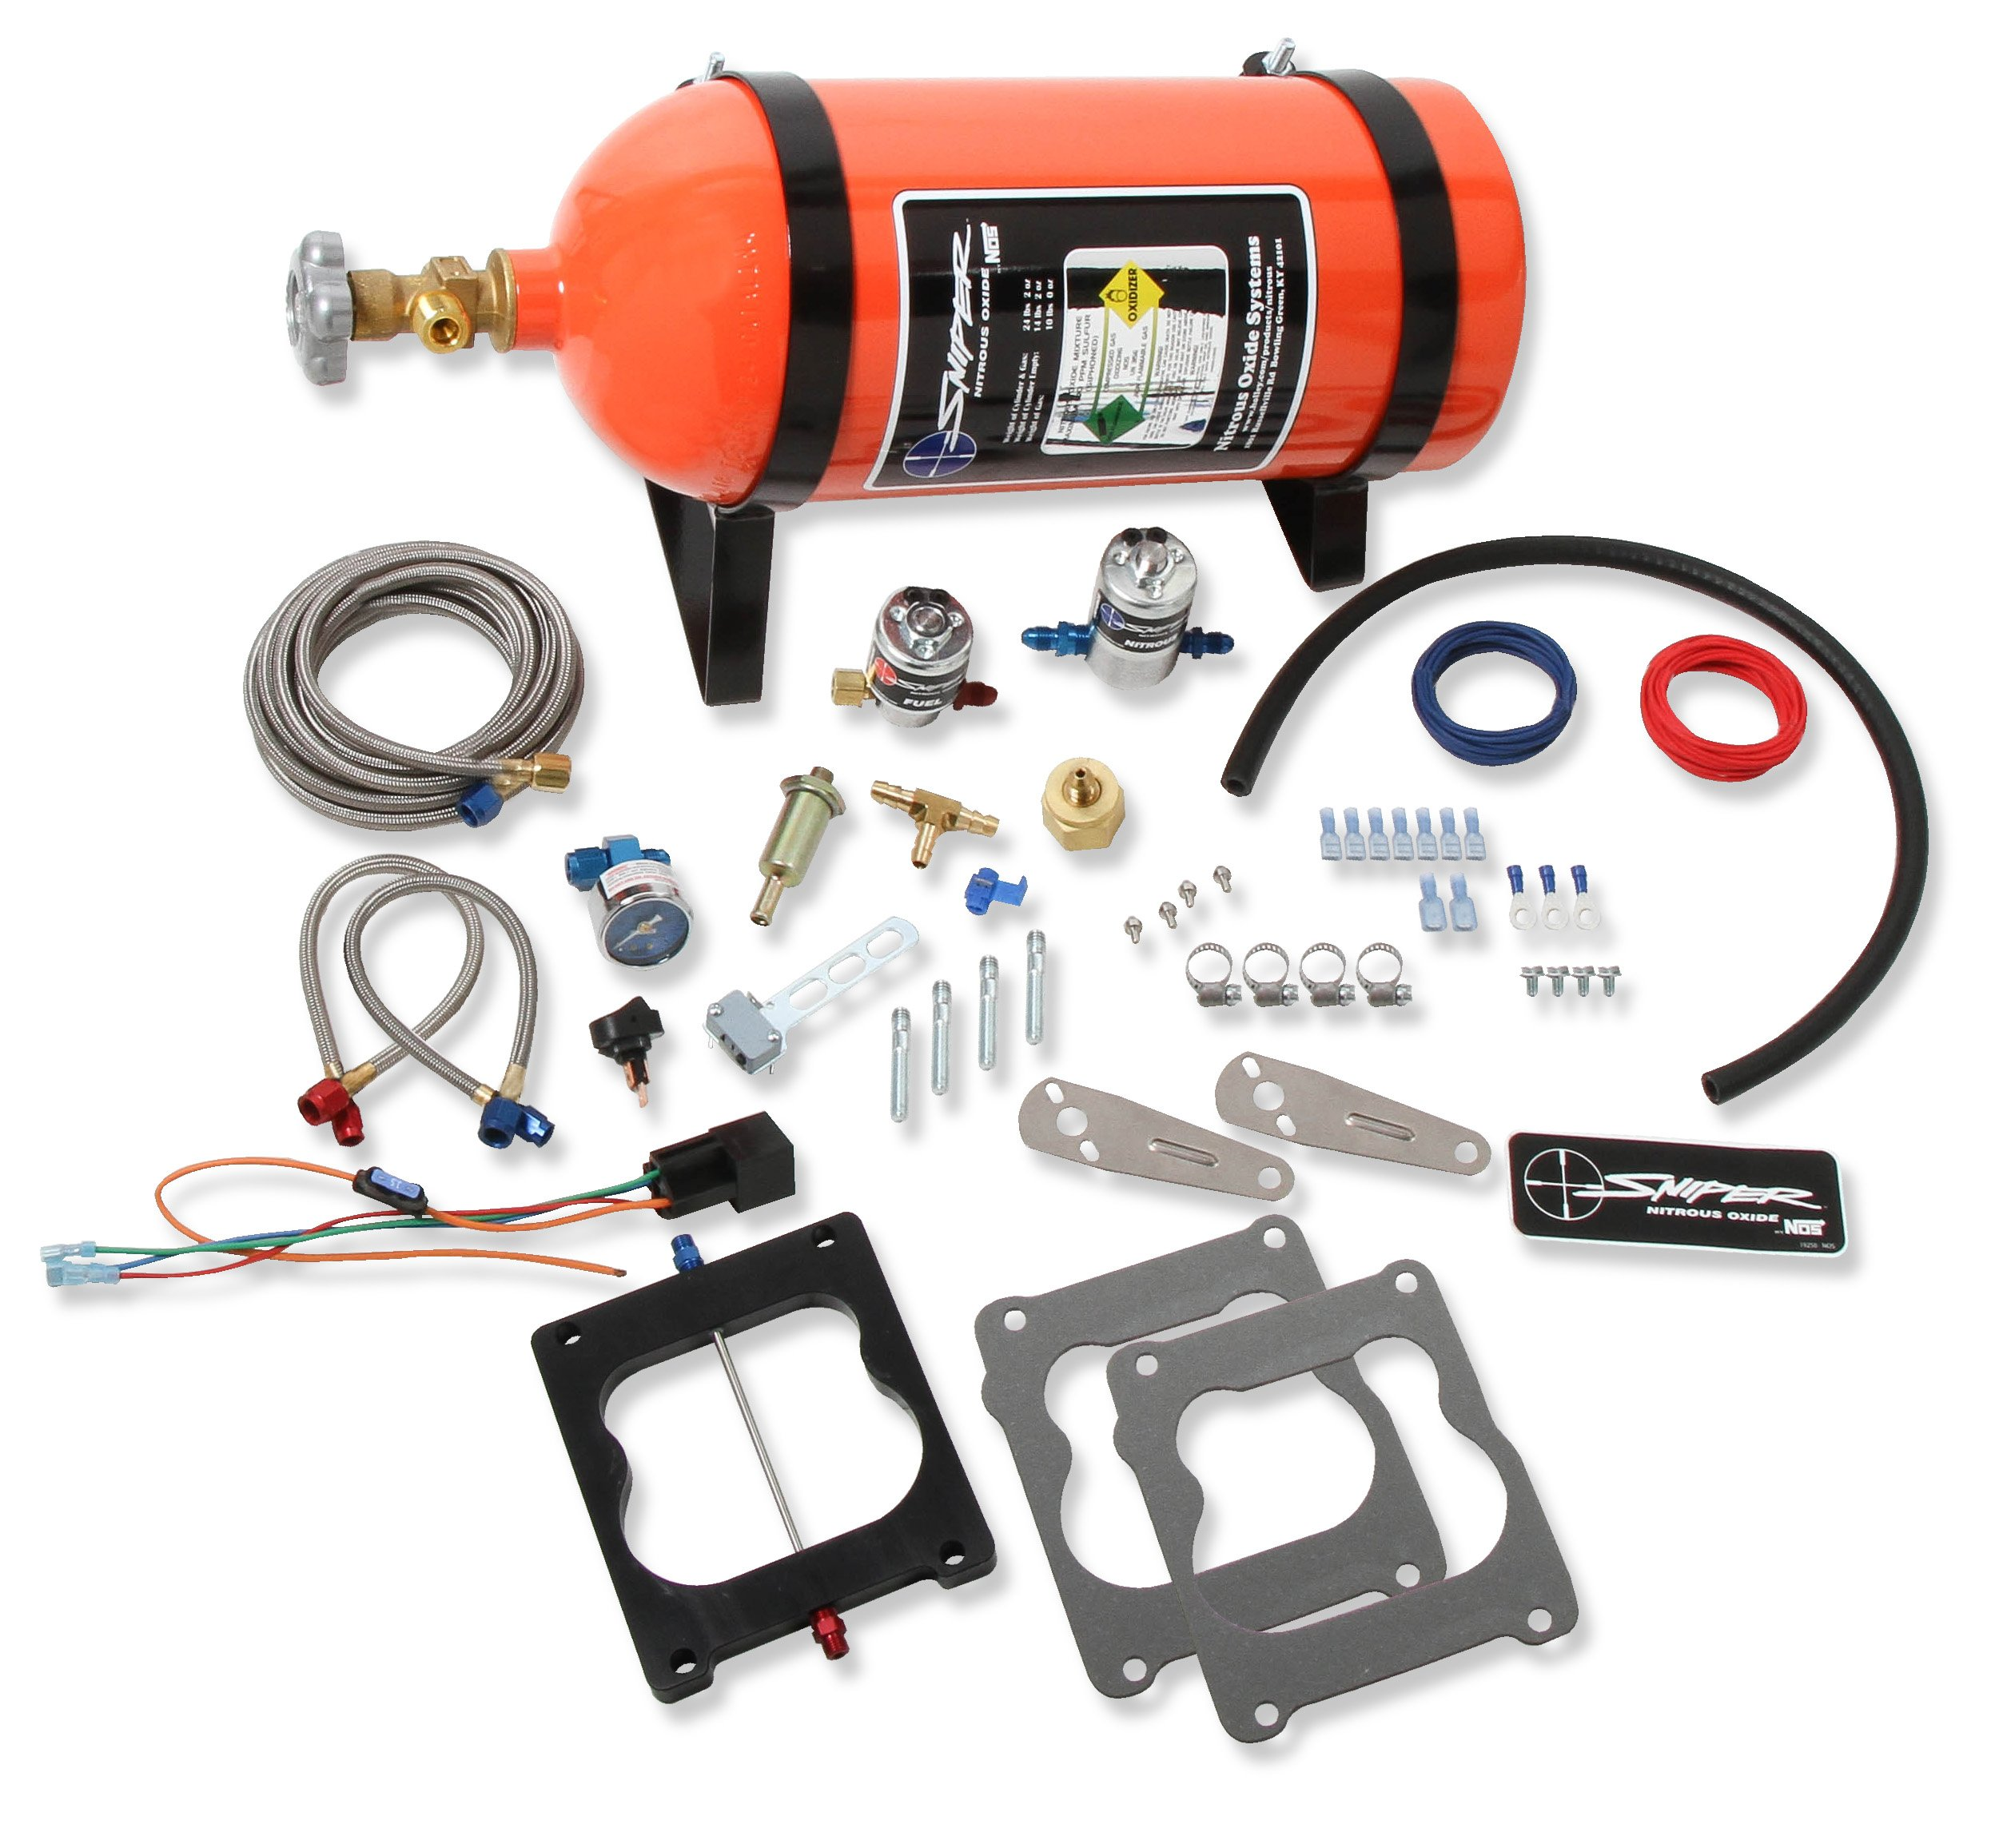 Nos nitrous oxide systems holley performance products 07007nos sniper 250 nitrous plate kit cheapraybanclubmaster Image collections